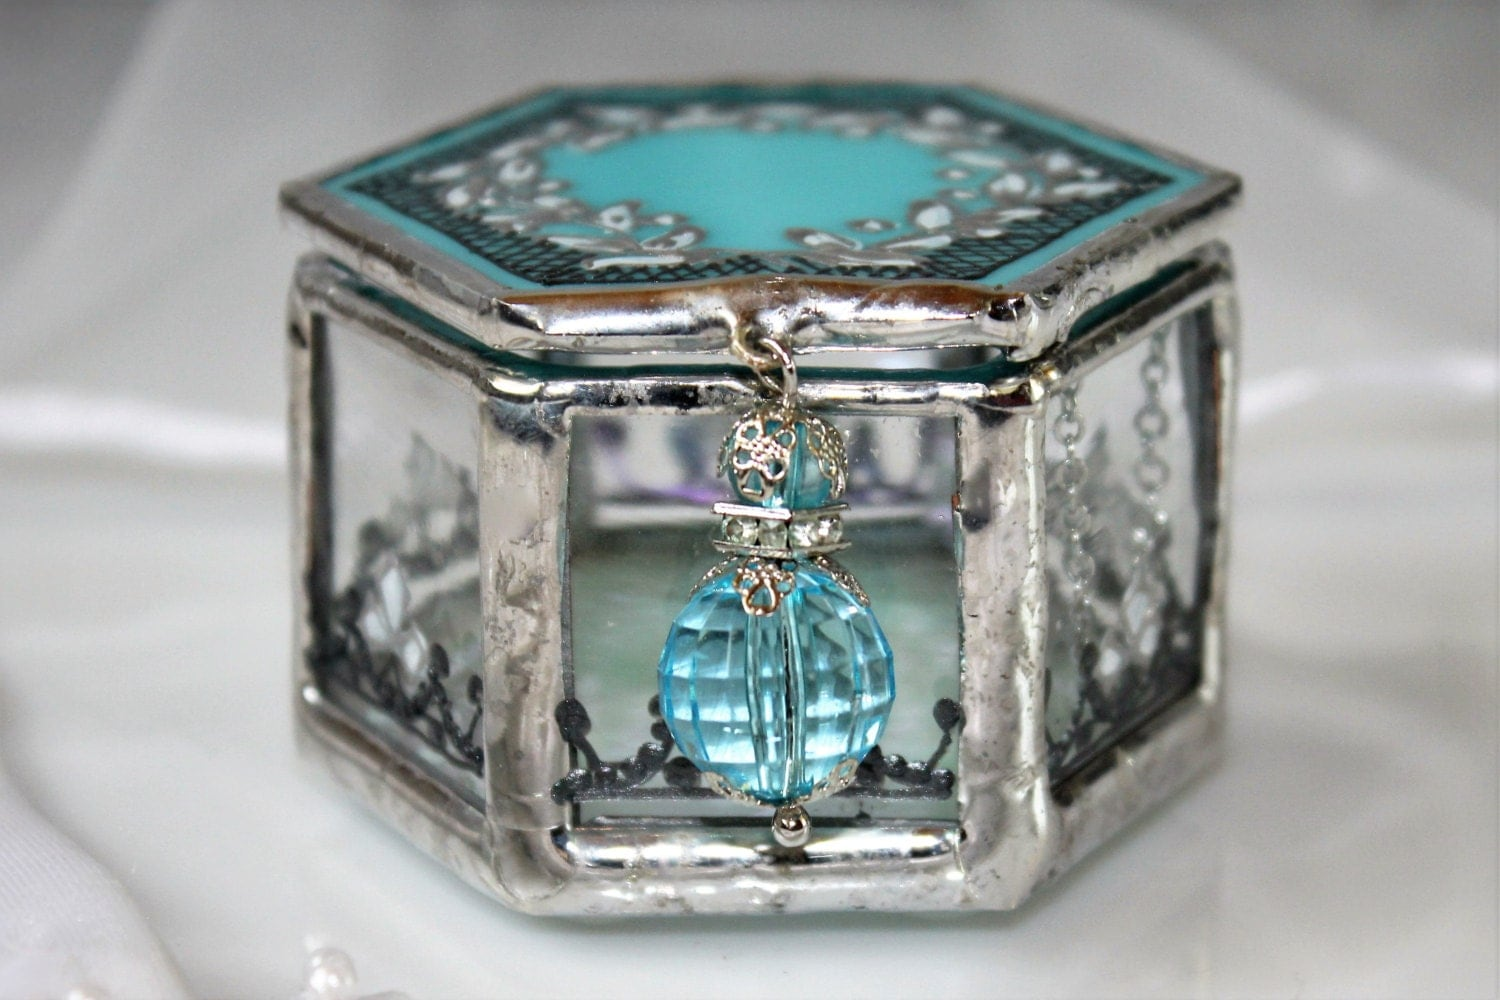 Turquoise wedding ring box fairy tale wedding ring holder for Wedding ring holder box